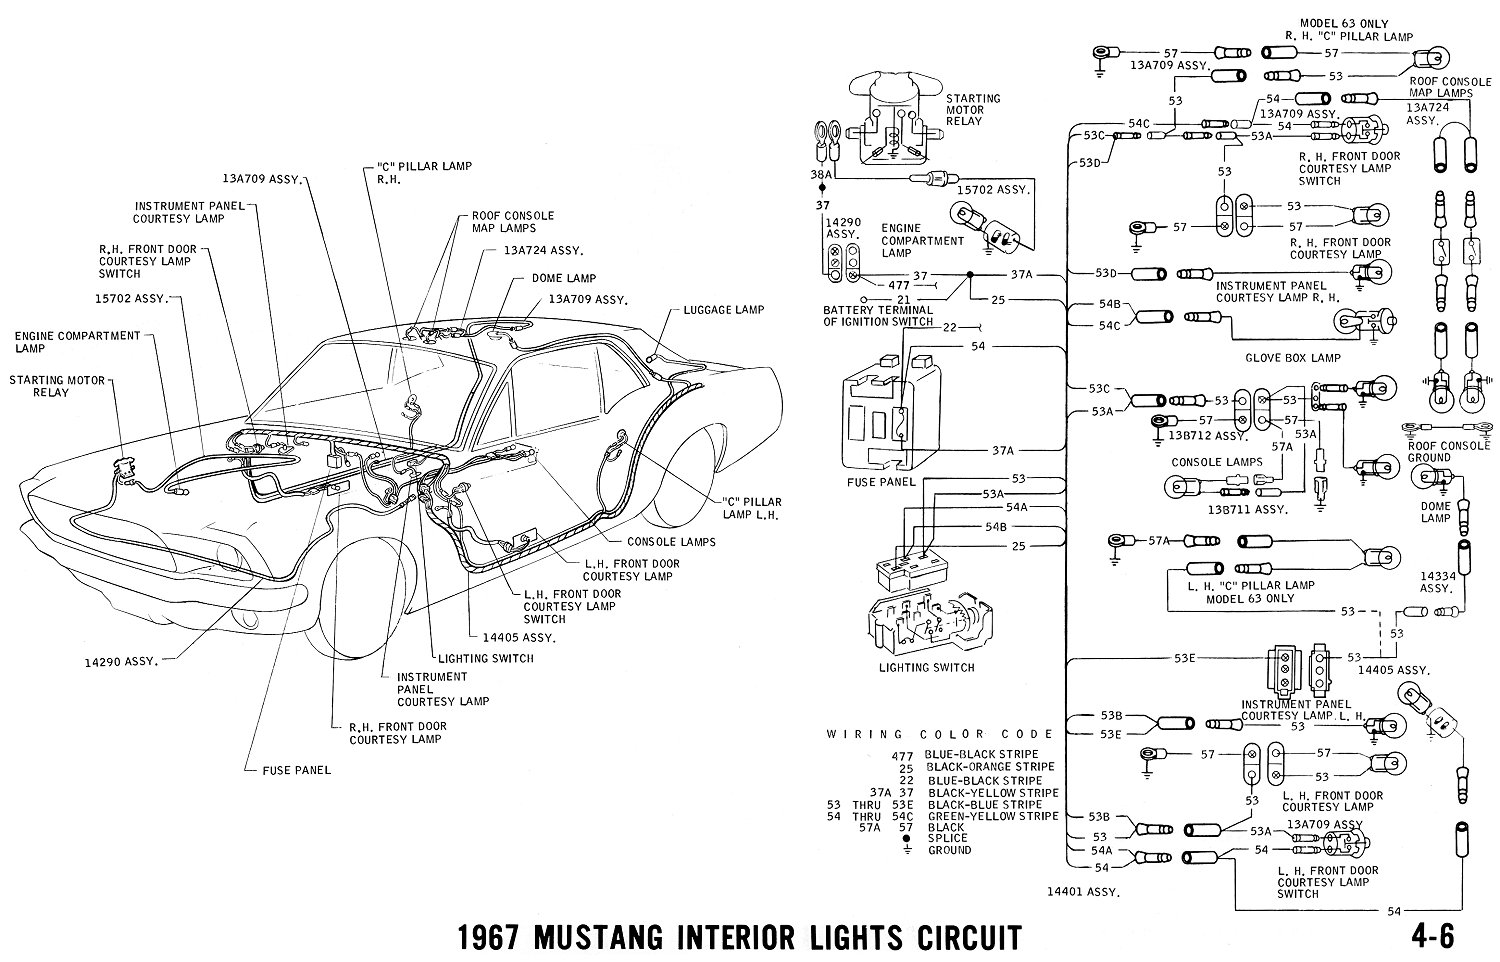 hight resolution of 1967 mustang wiring and vacuum diagrams average joe restoration 1967 ford f100 turn signal wiring diagram 67 ford mustang 289 engine wiring diagrams